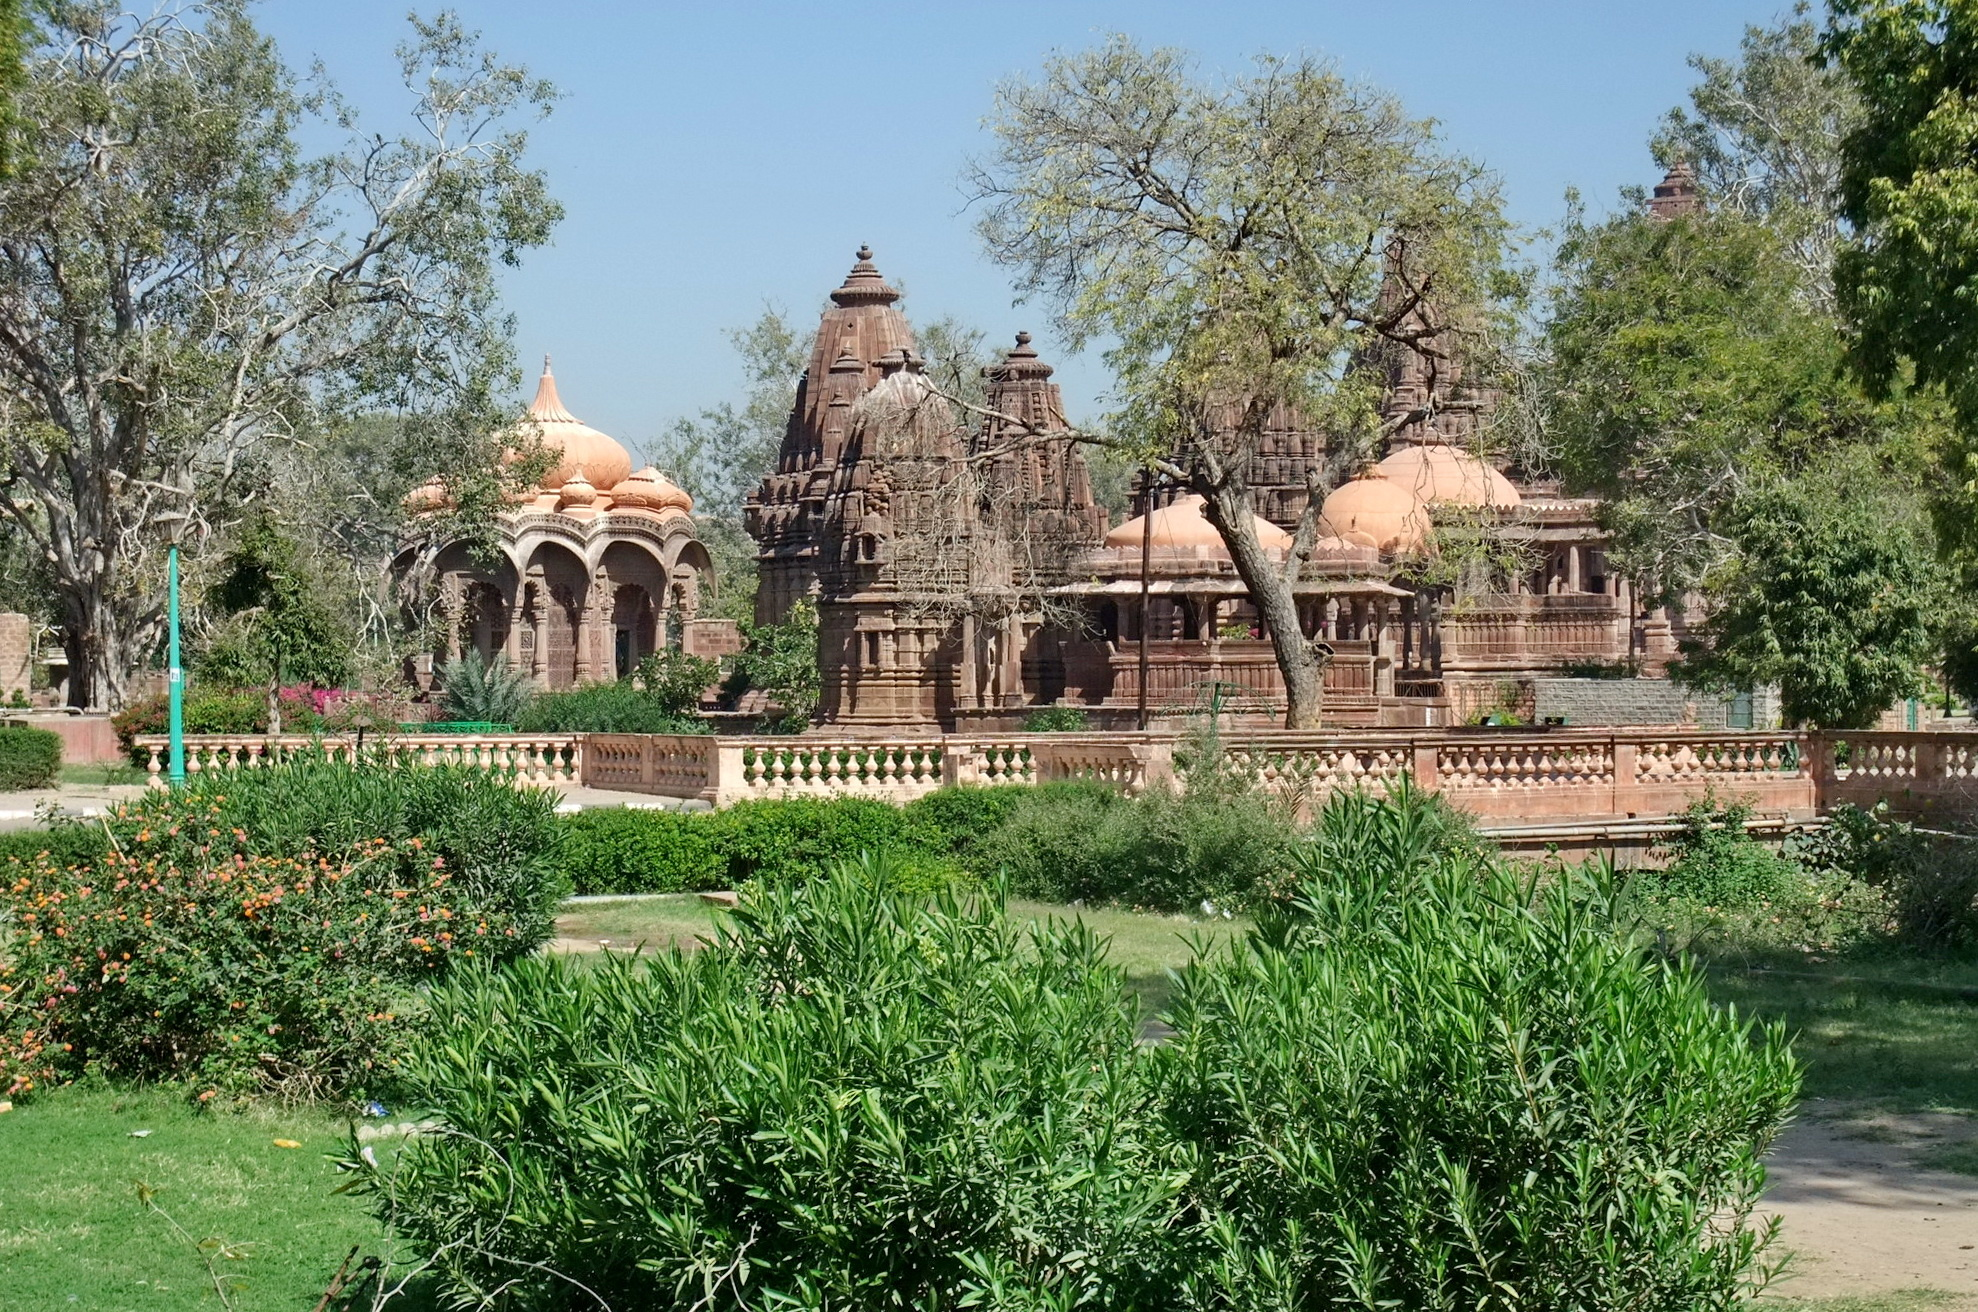 Travel guide to visit Jodhpur : Mandore Garden